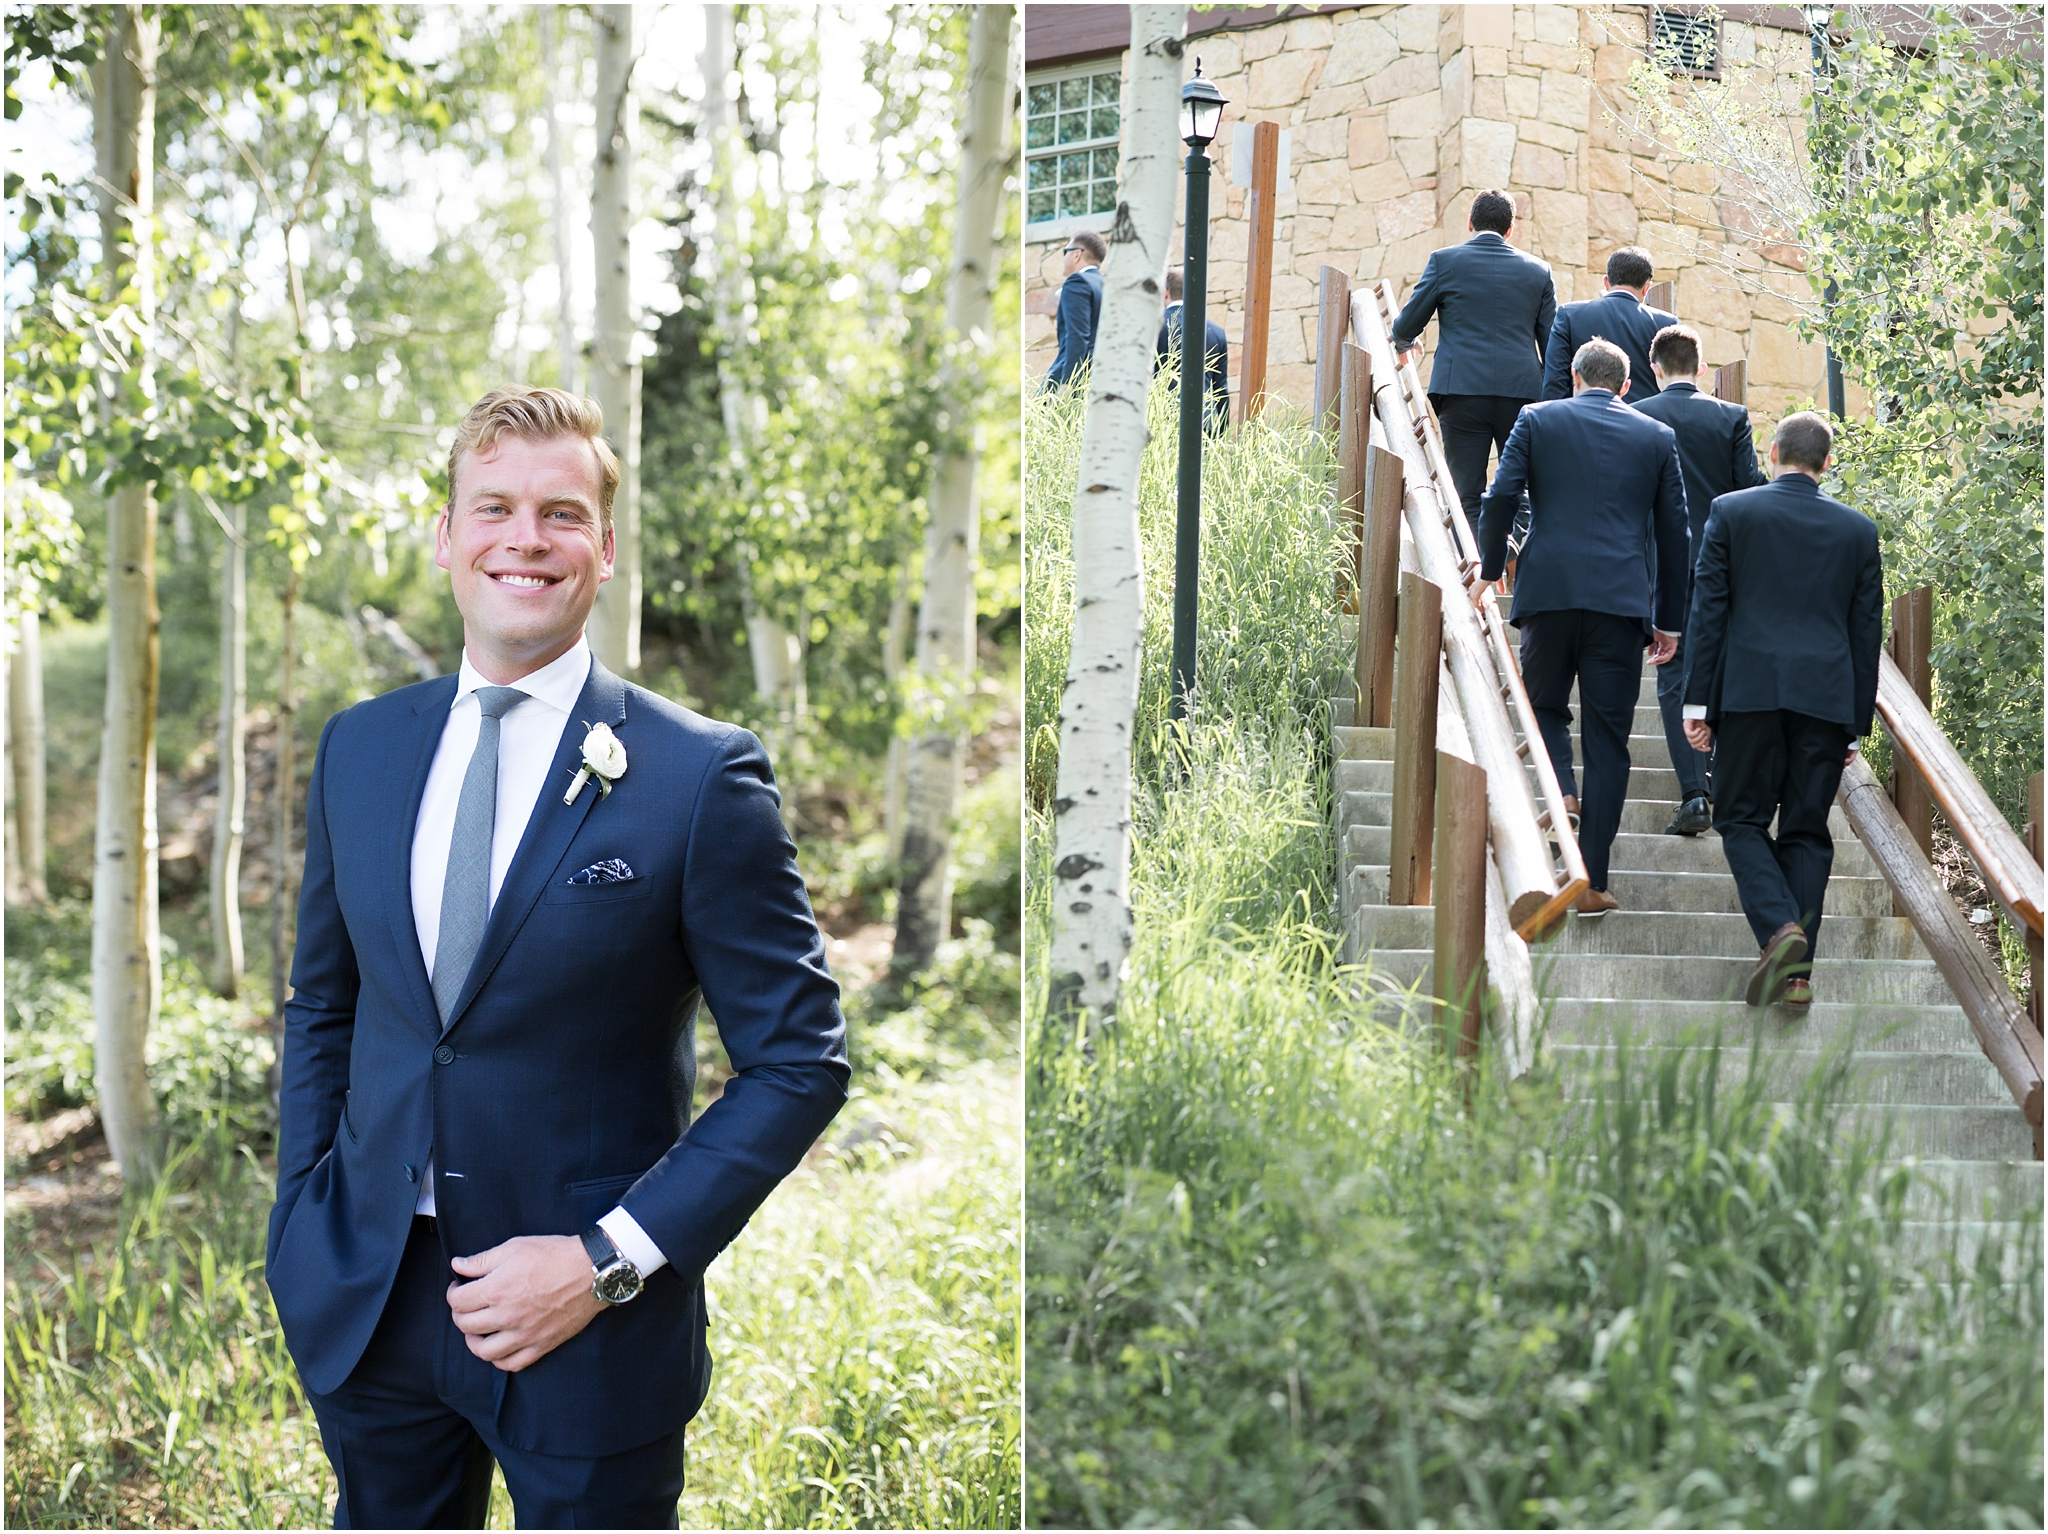 Park City Wedding Photographer Stein Eriksen Jewish Wedding Utah Wedding Photographer www.kristinacurtisphotography.com